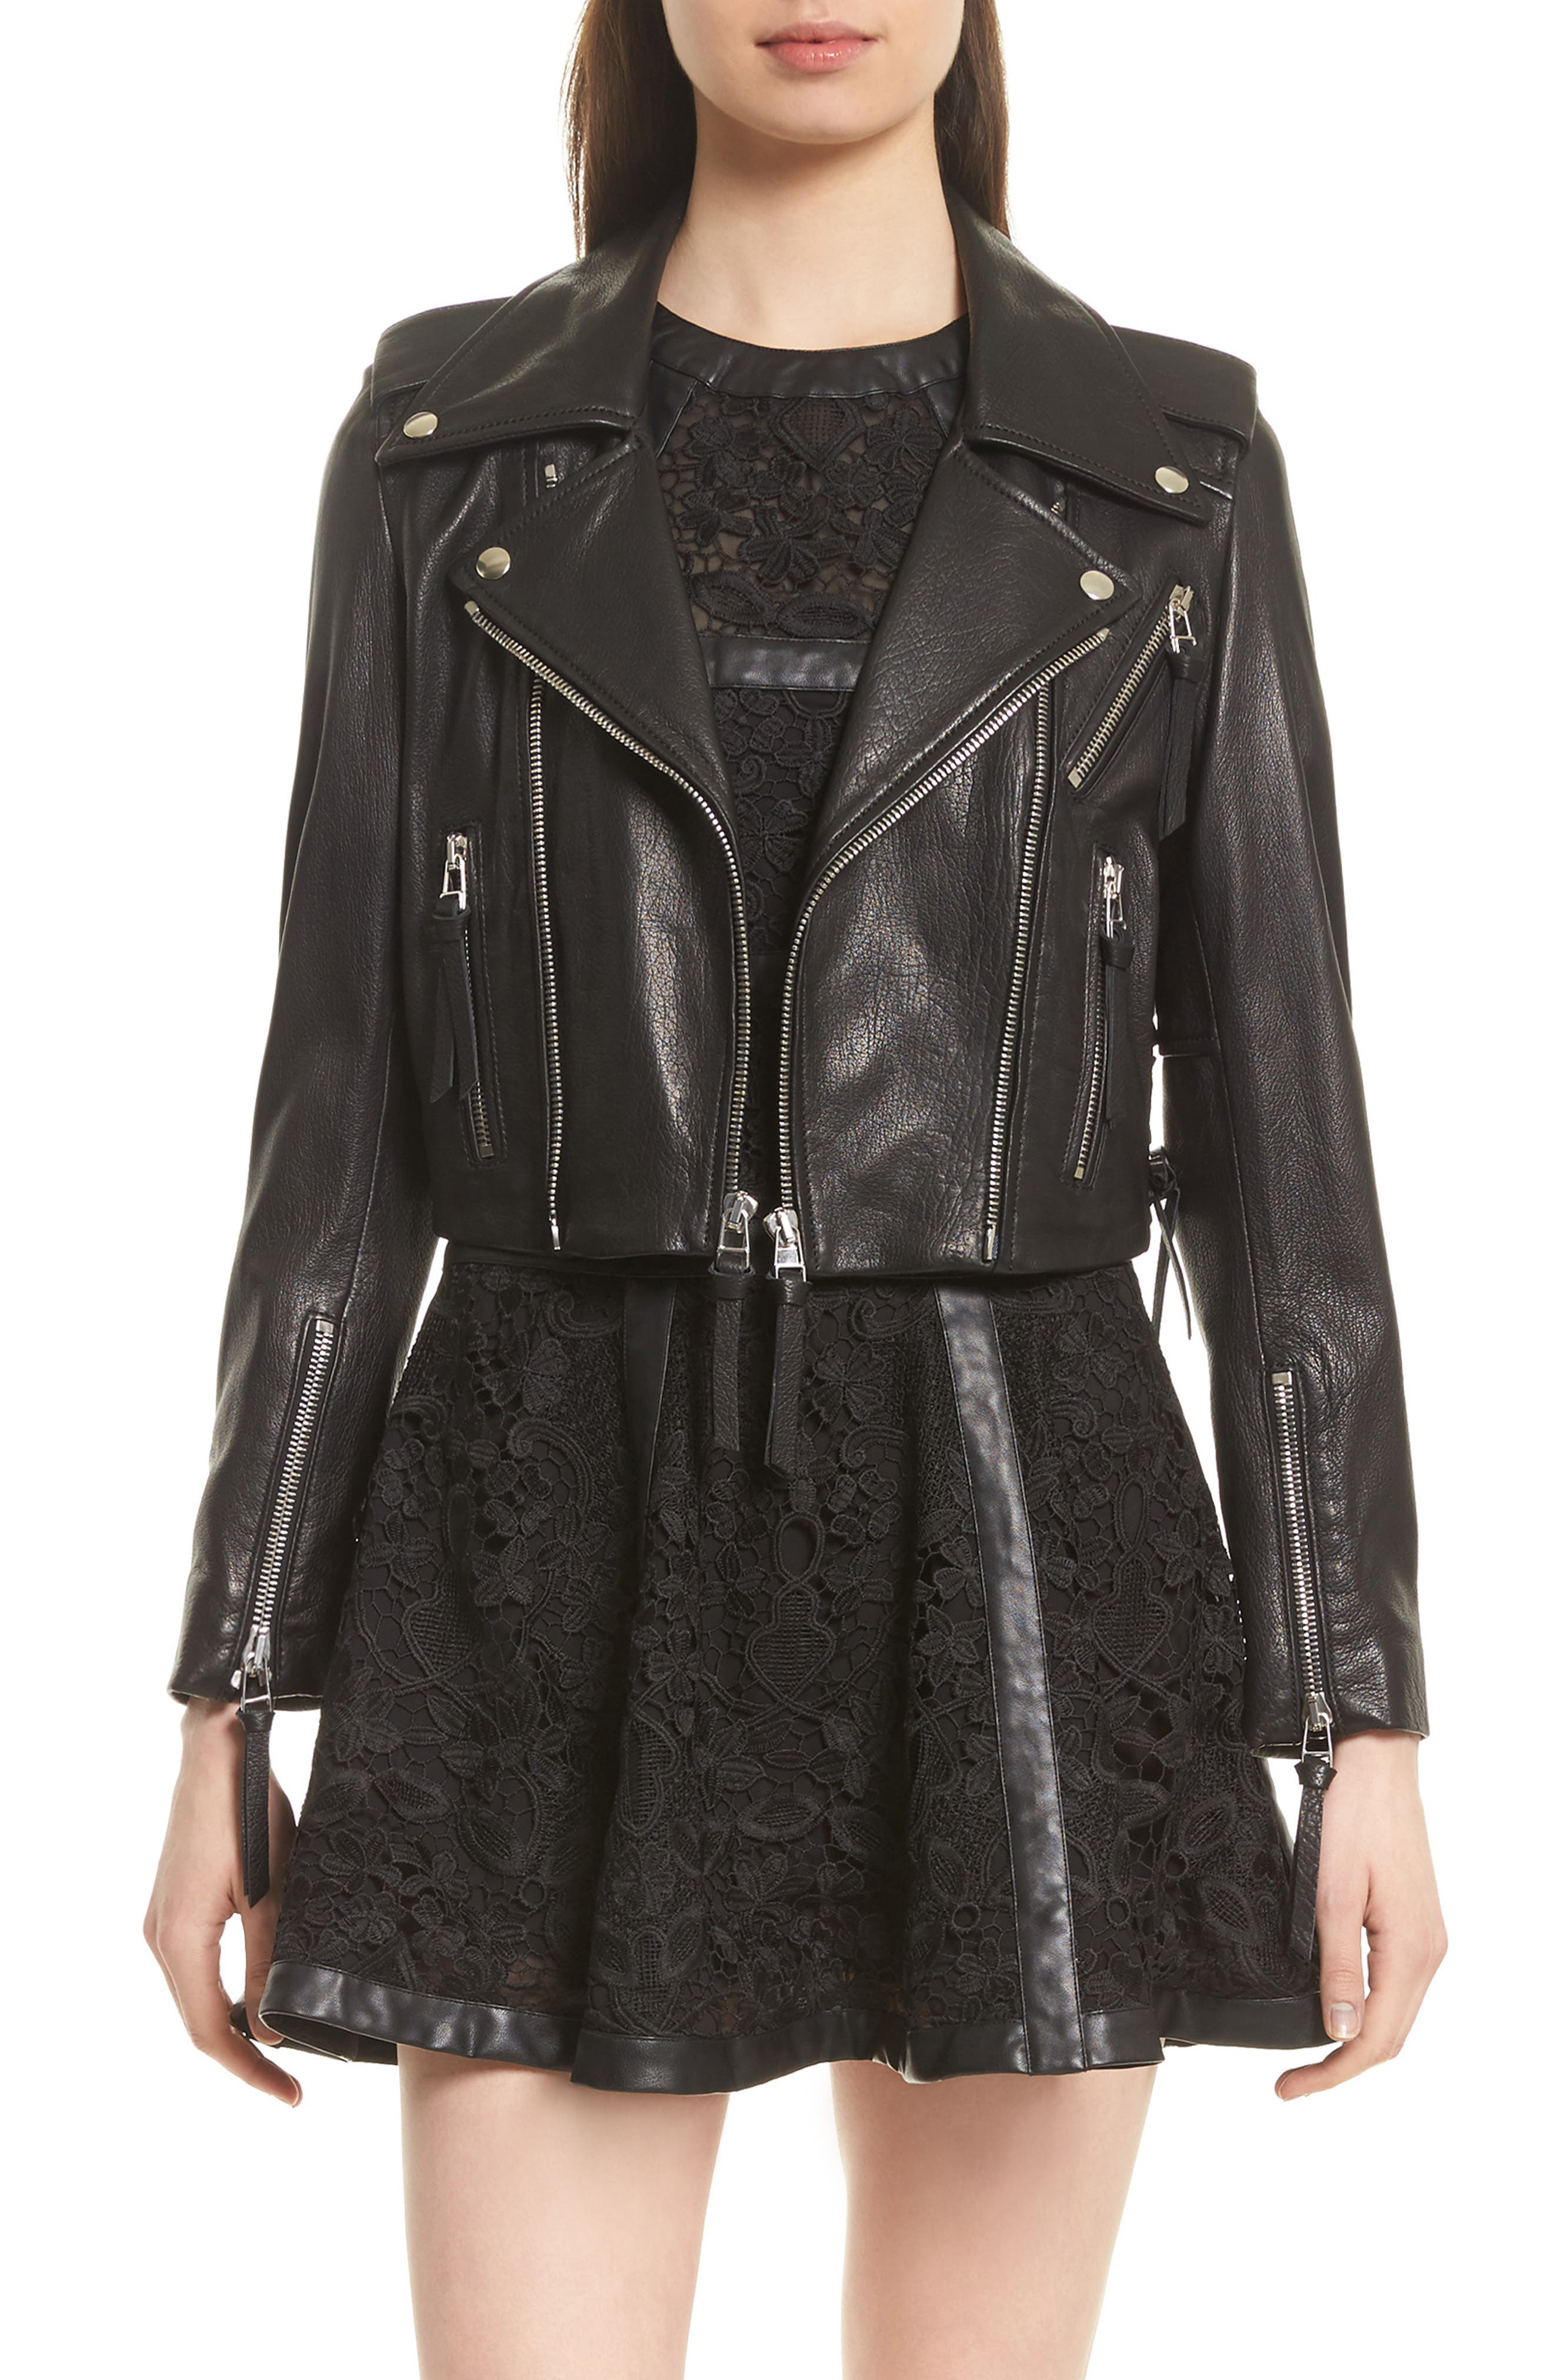 The Kooples Lace-Up Lambskin Leather Jacket